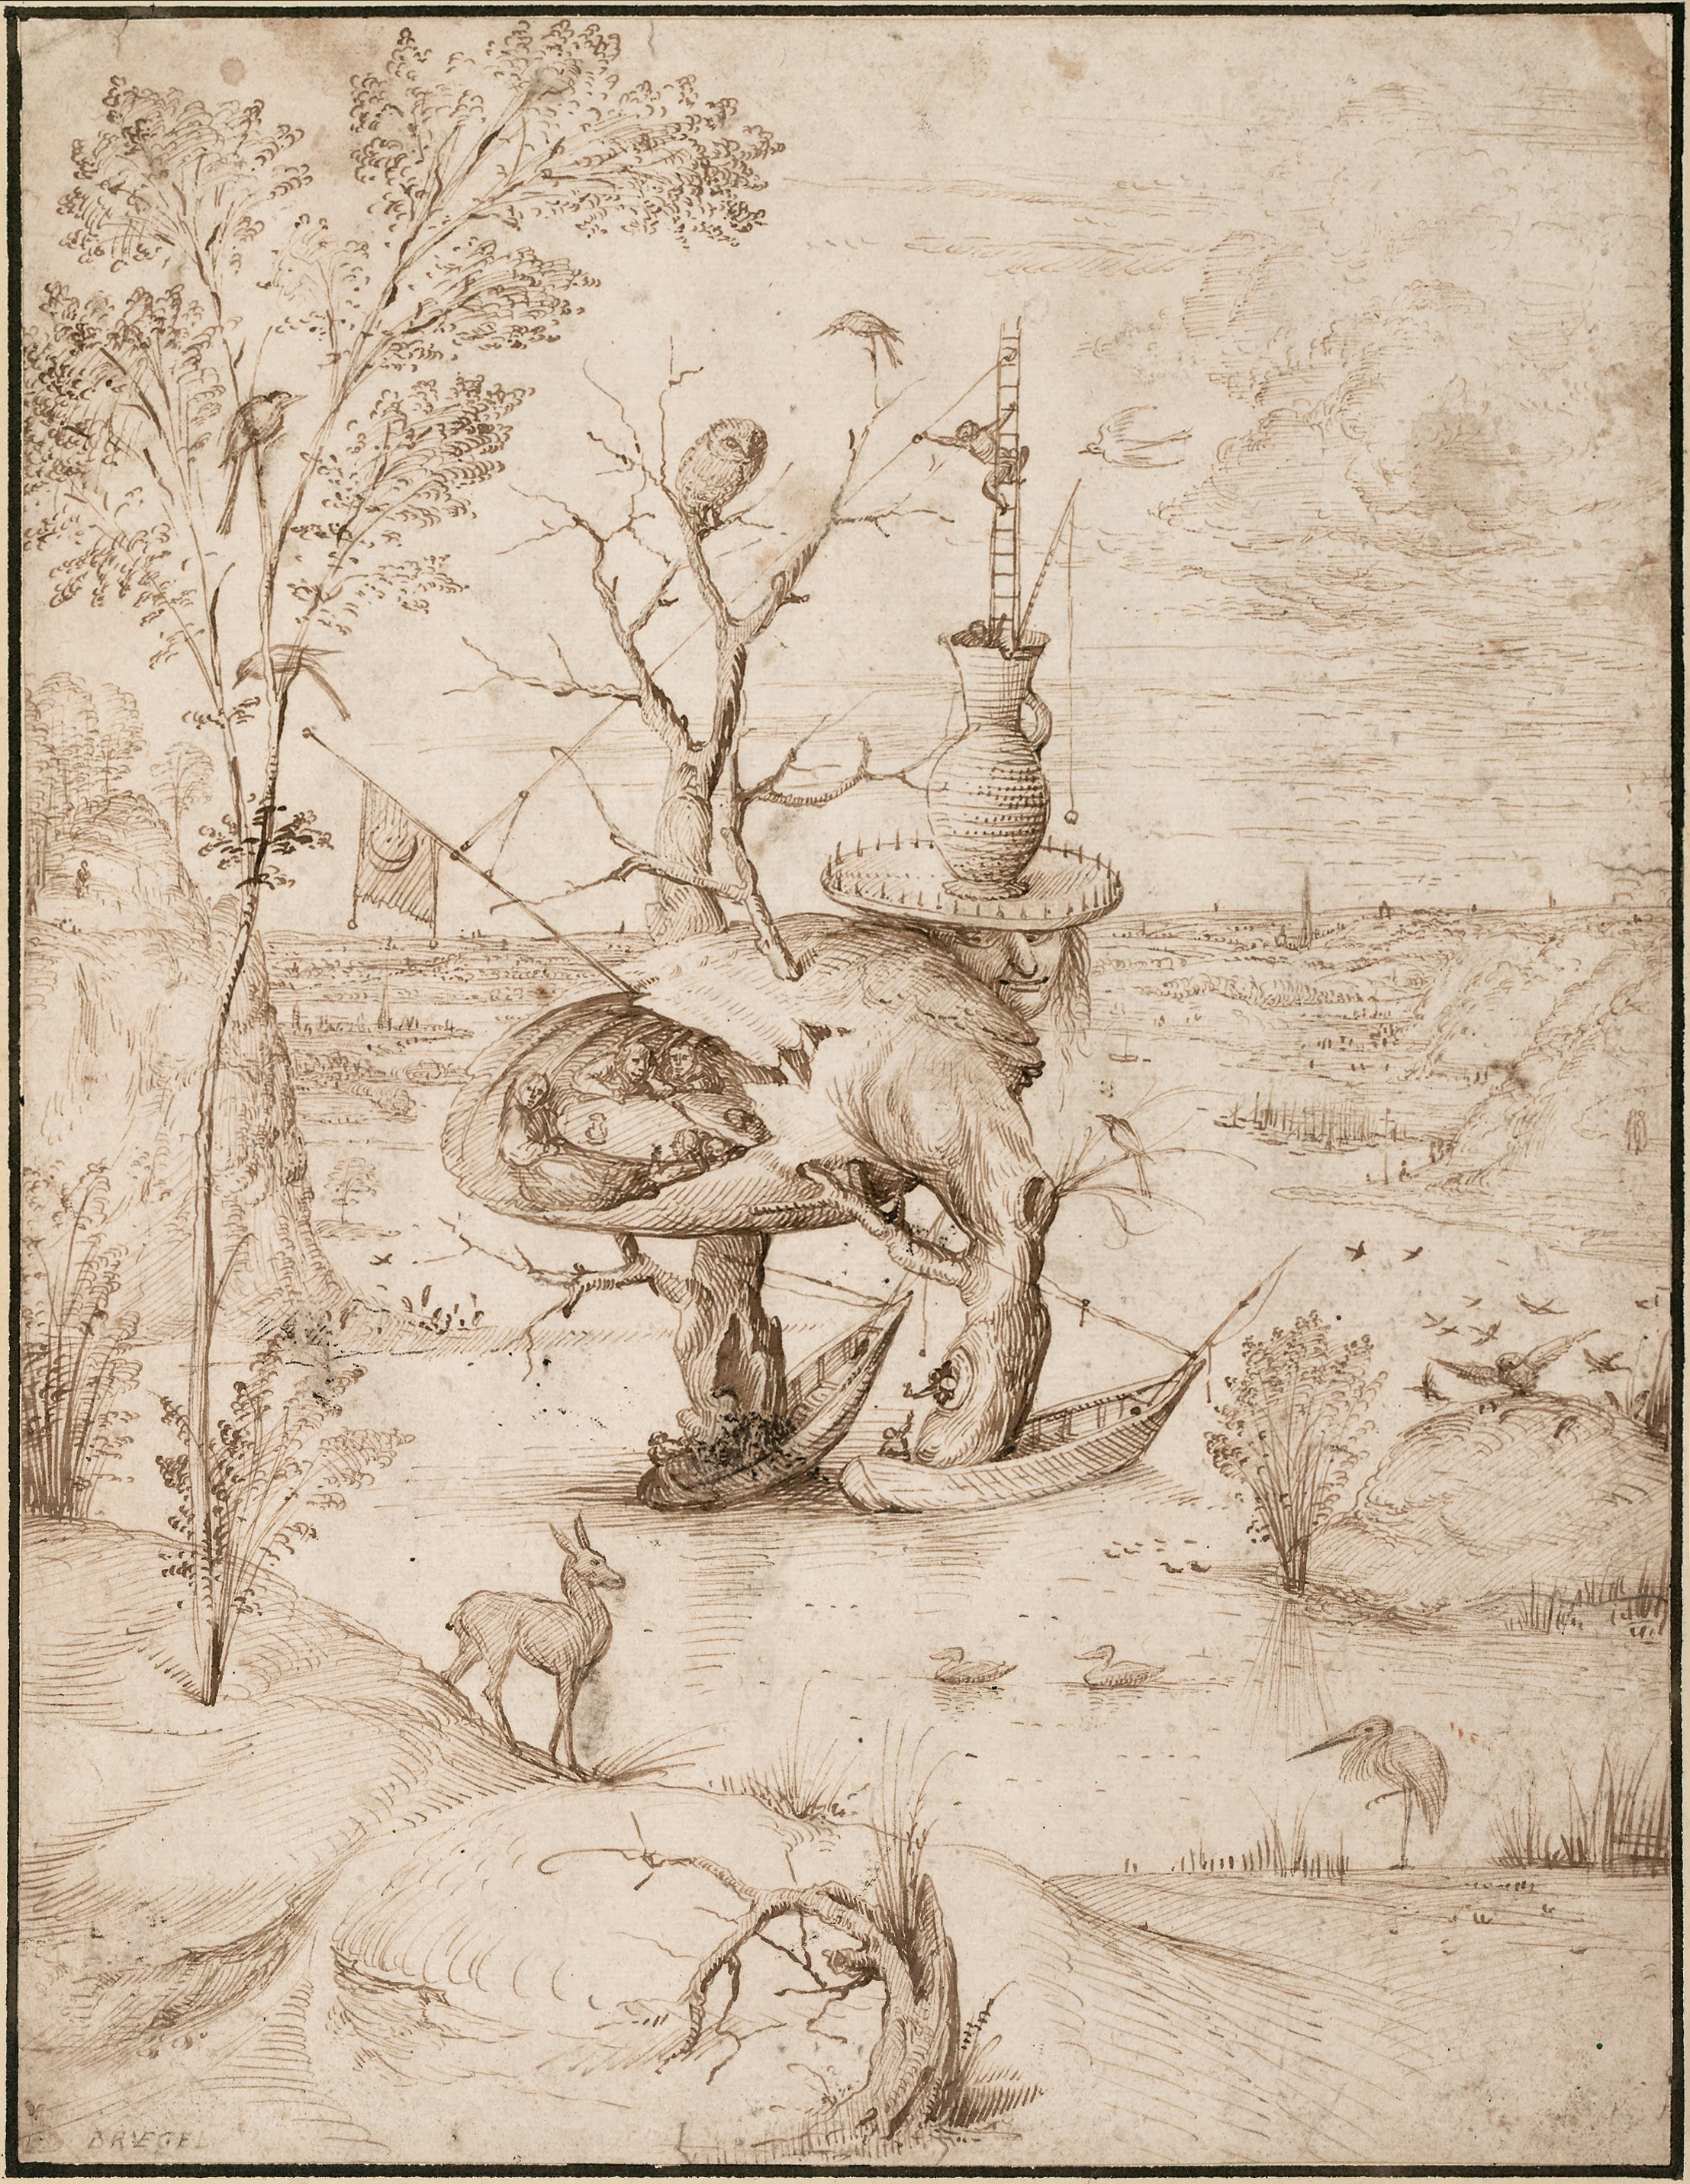 File:Hieronymus Bosch - The Tree-Man, c. 1505 - Google Art